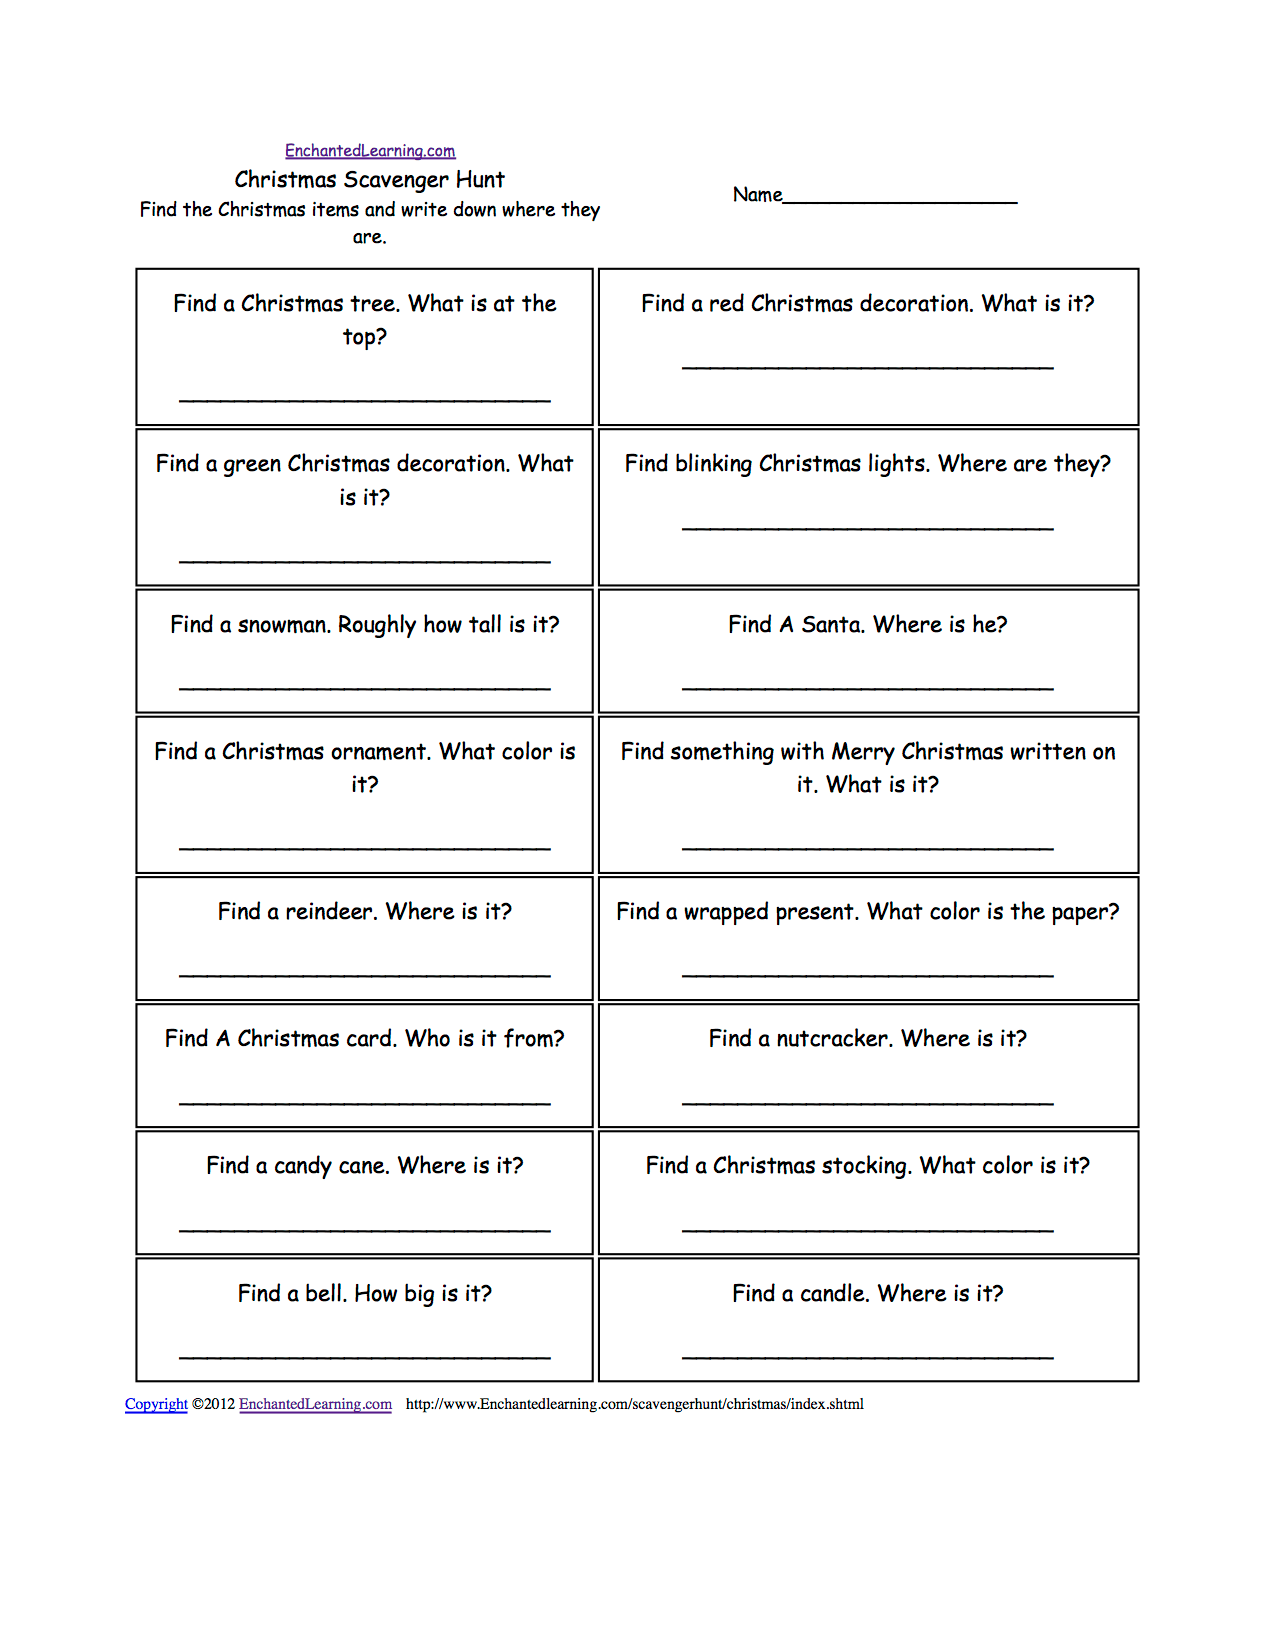 Scavenger Hunt Student Worksheet Answer Key